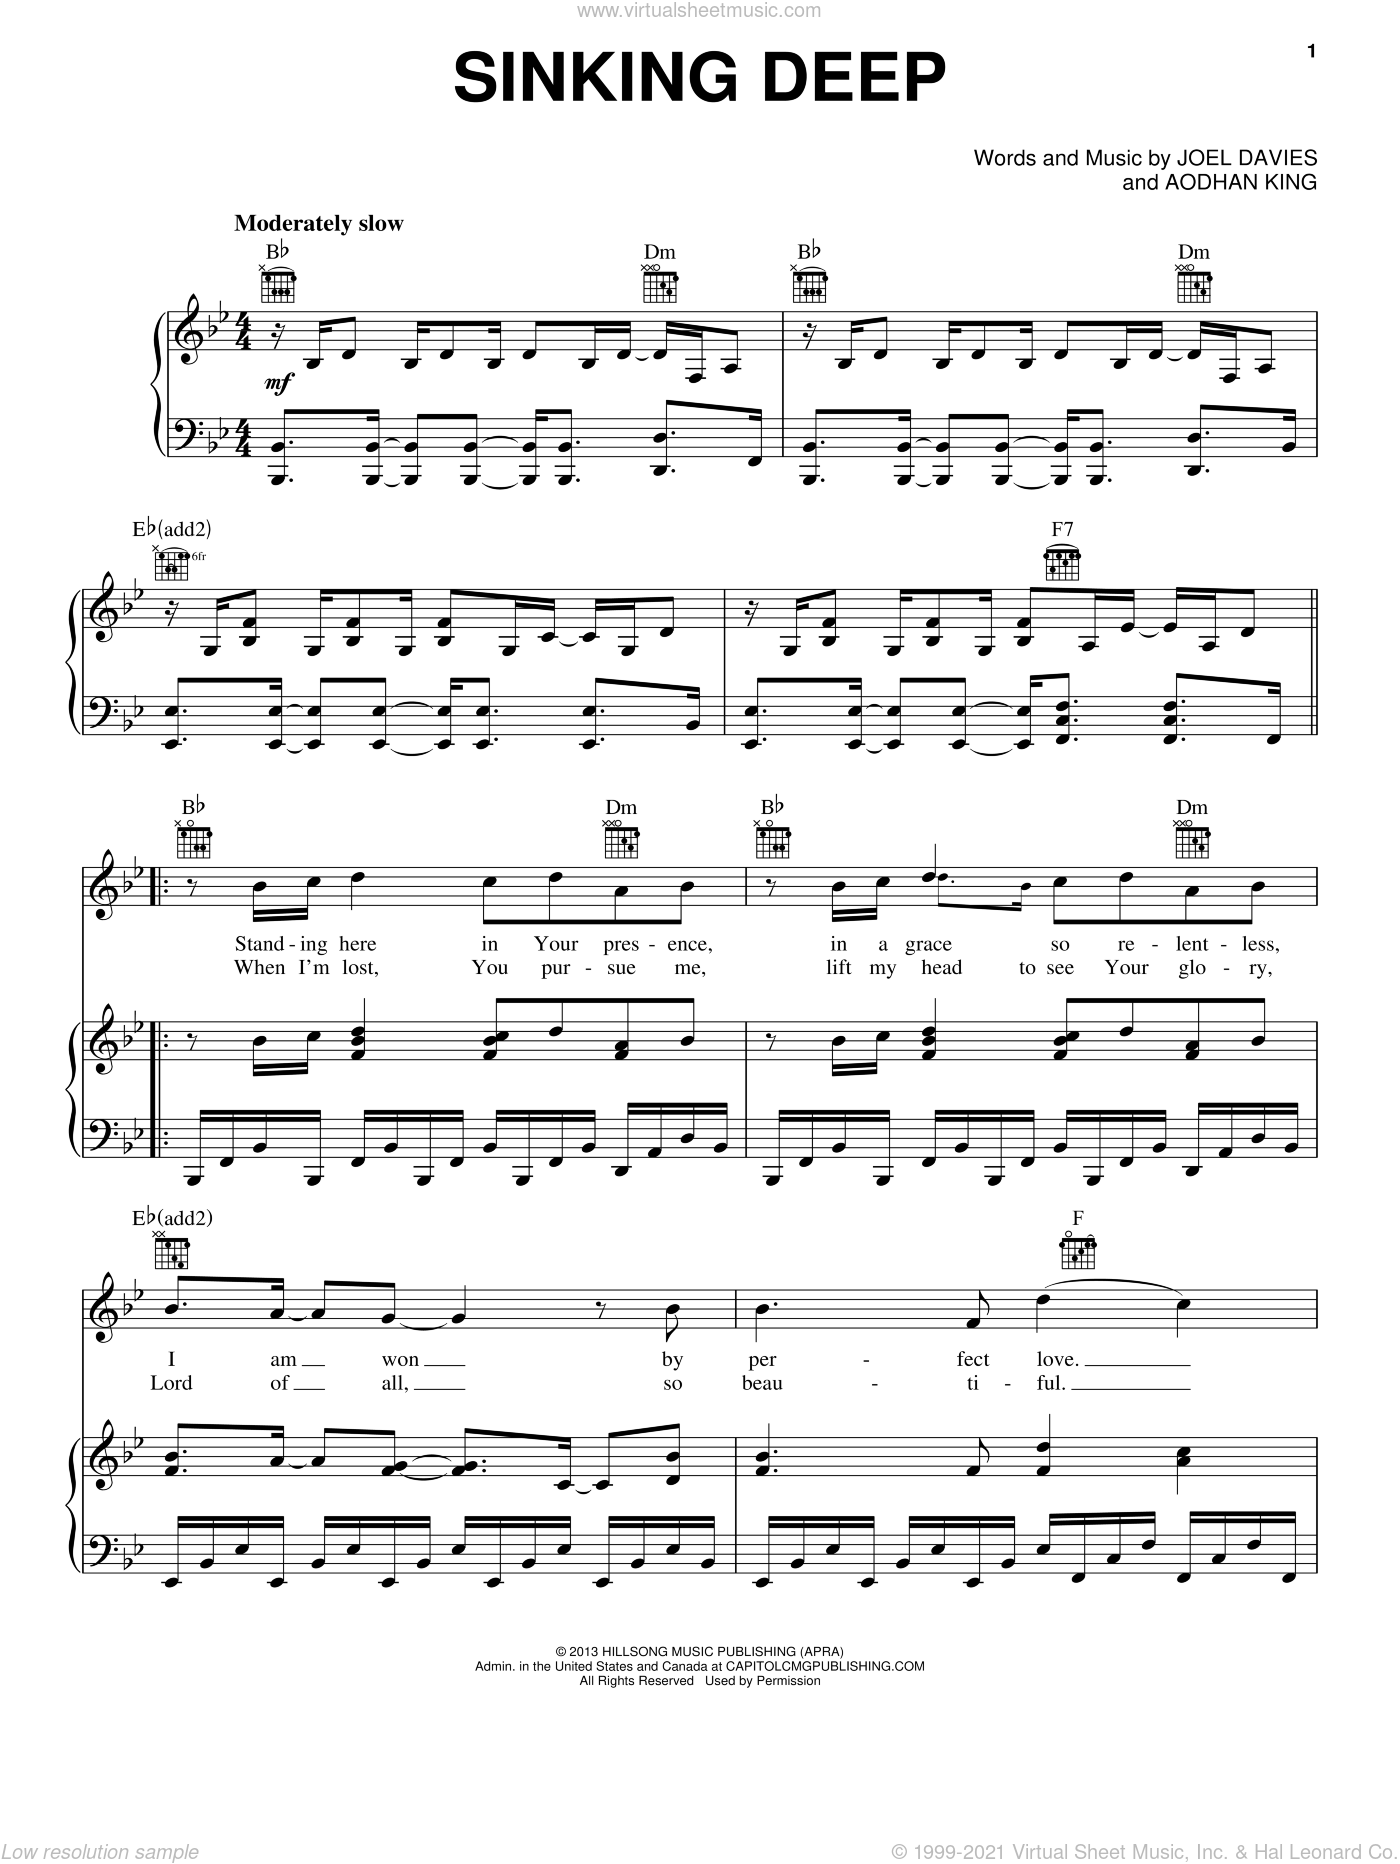 Sinking Deep sheet music for voice, piano or guitar by Aodhan King and Joel Davies, intermediate skill level